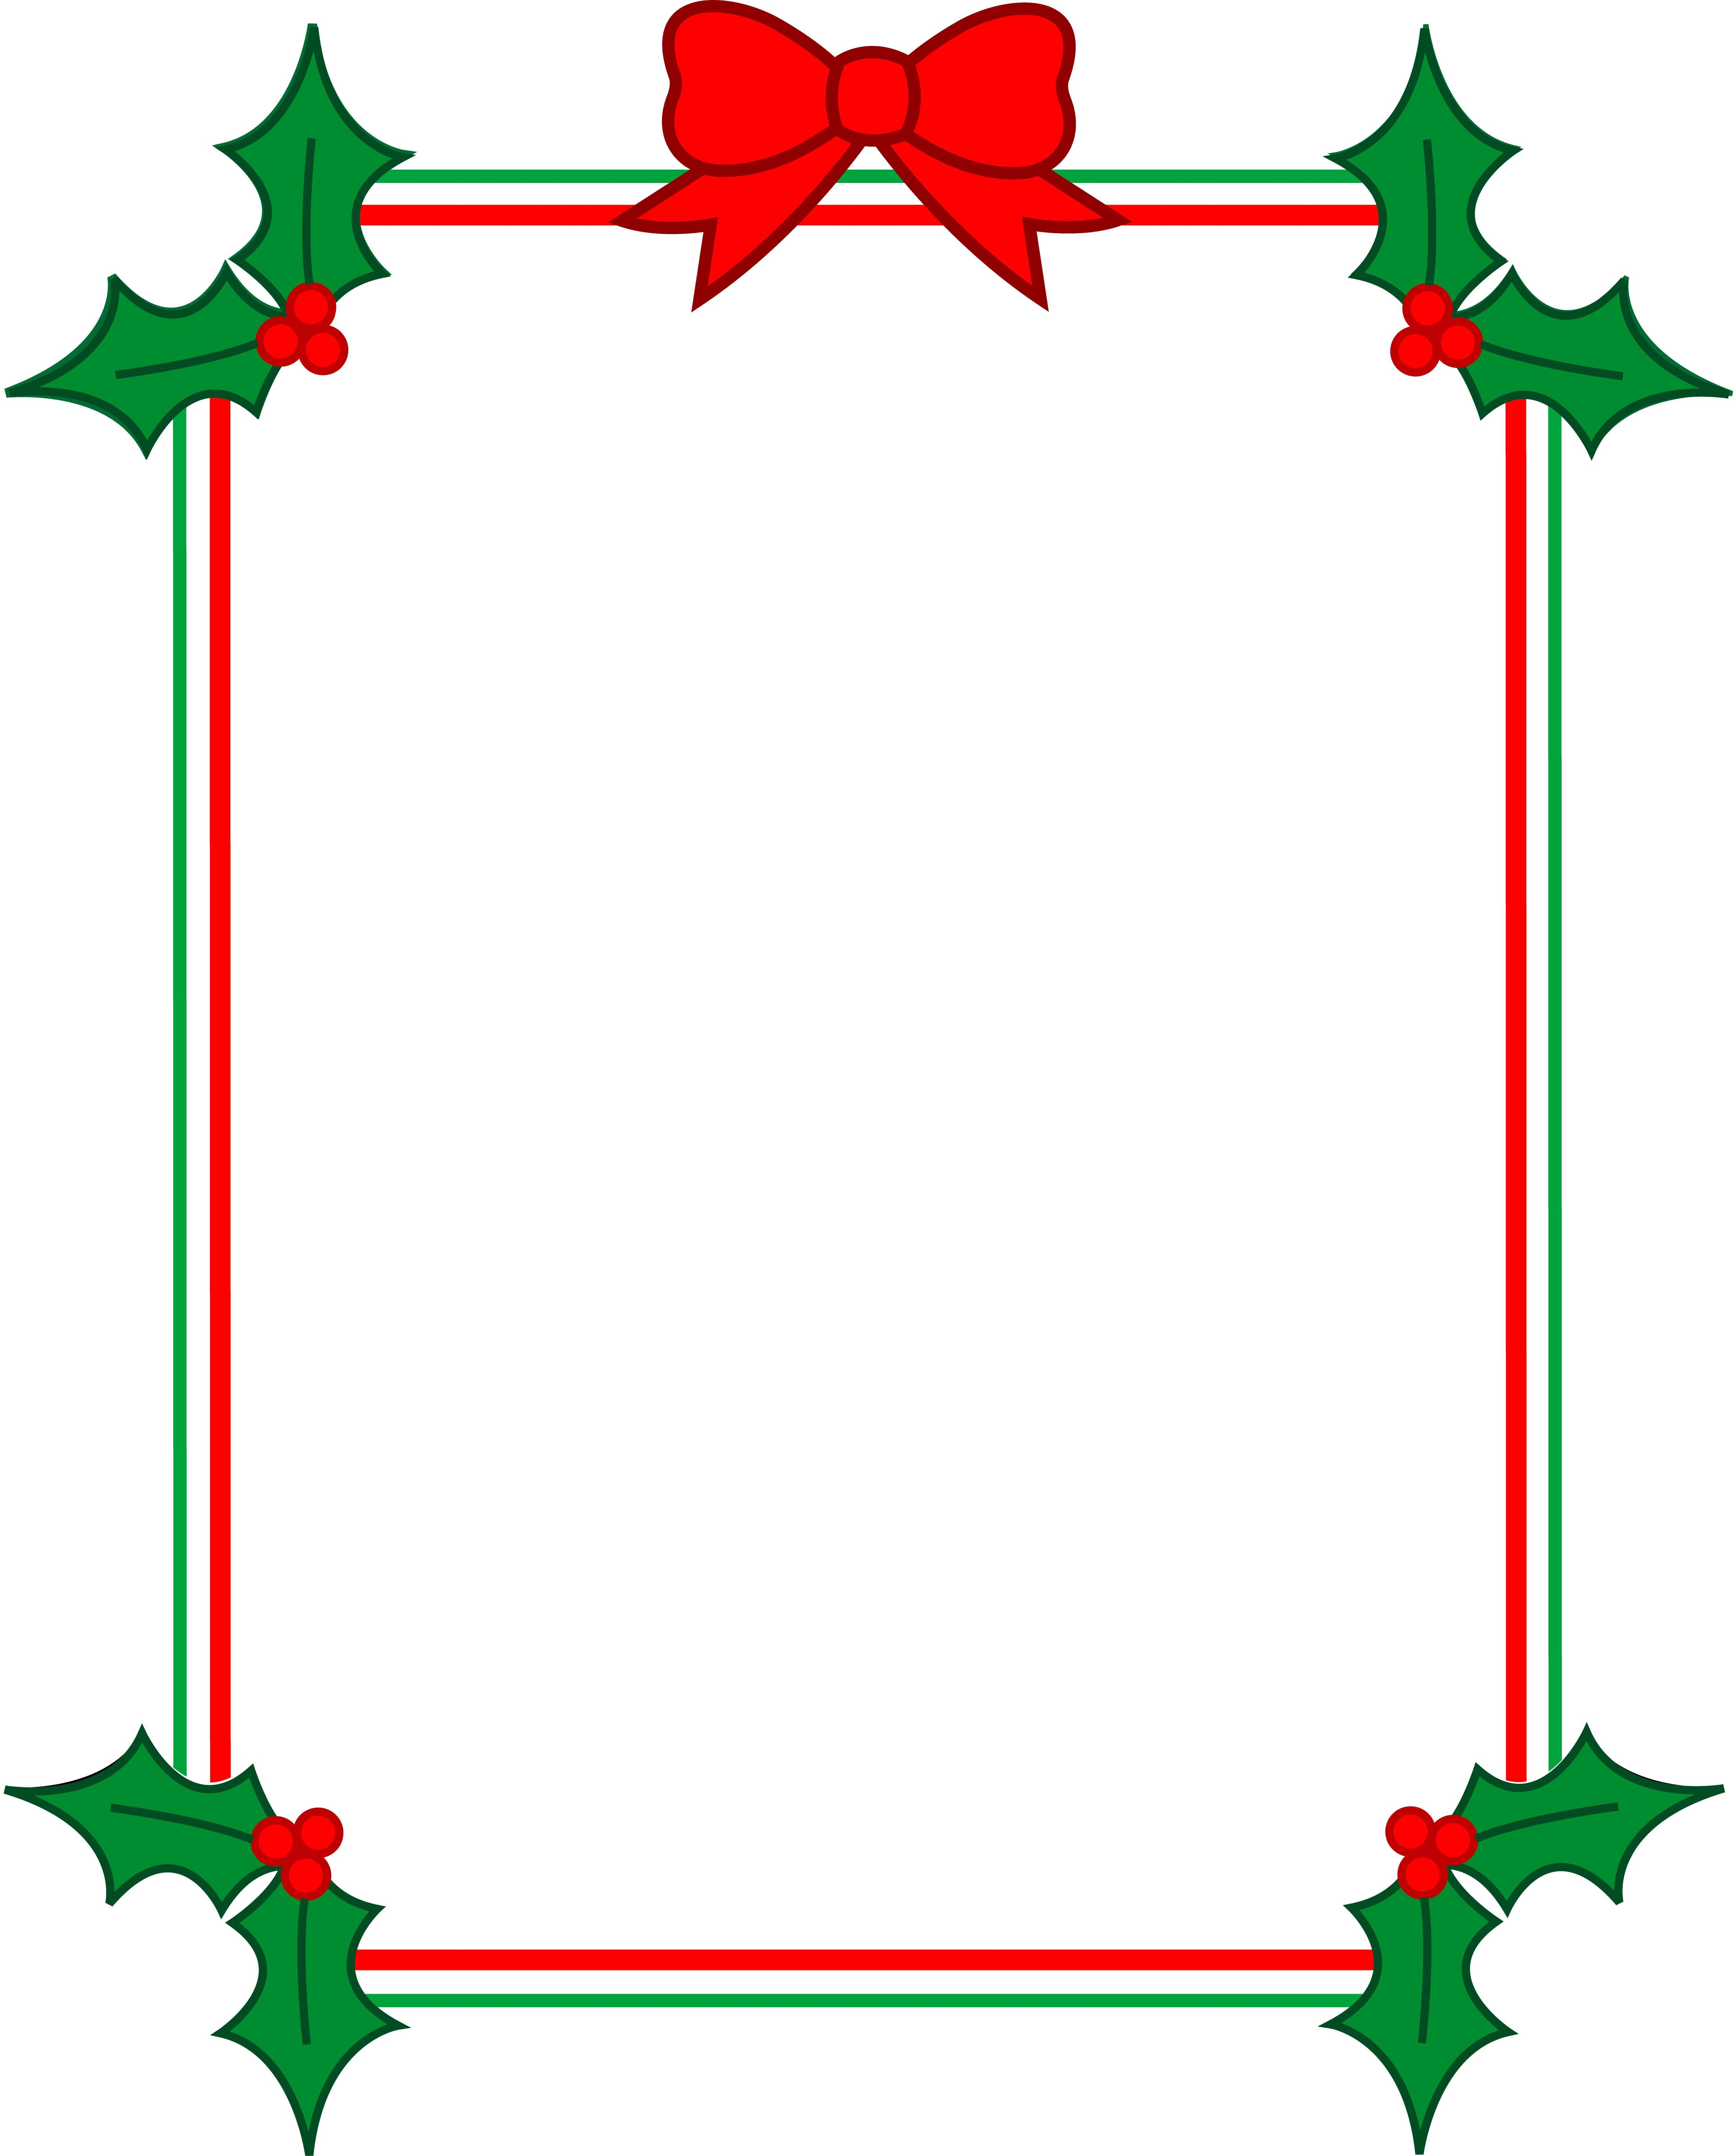 Free Christmas Boarders Bing Images Free Christmas Borders Page Borders Christmas Boarders